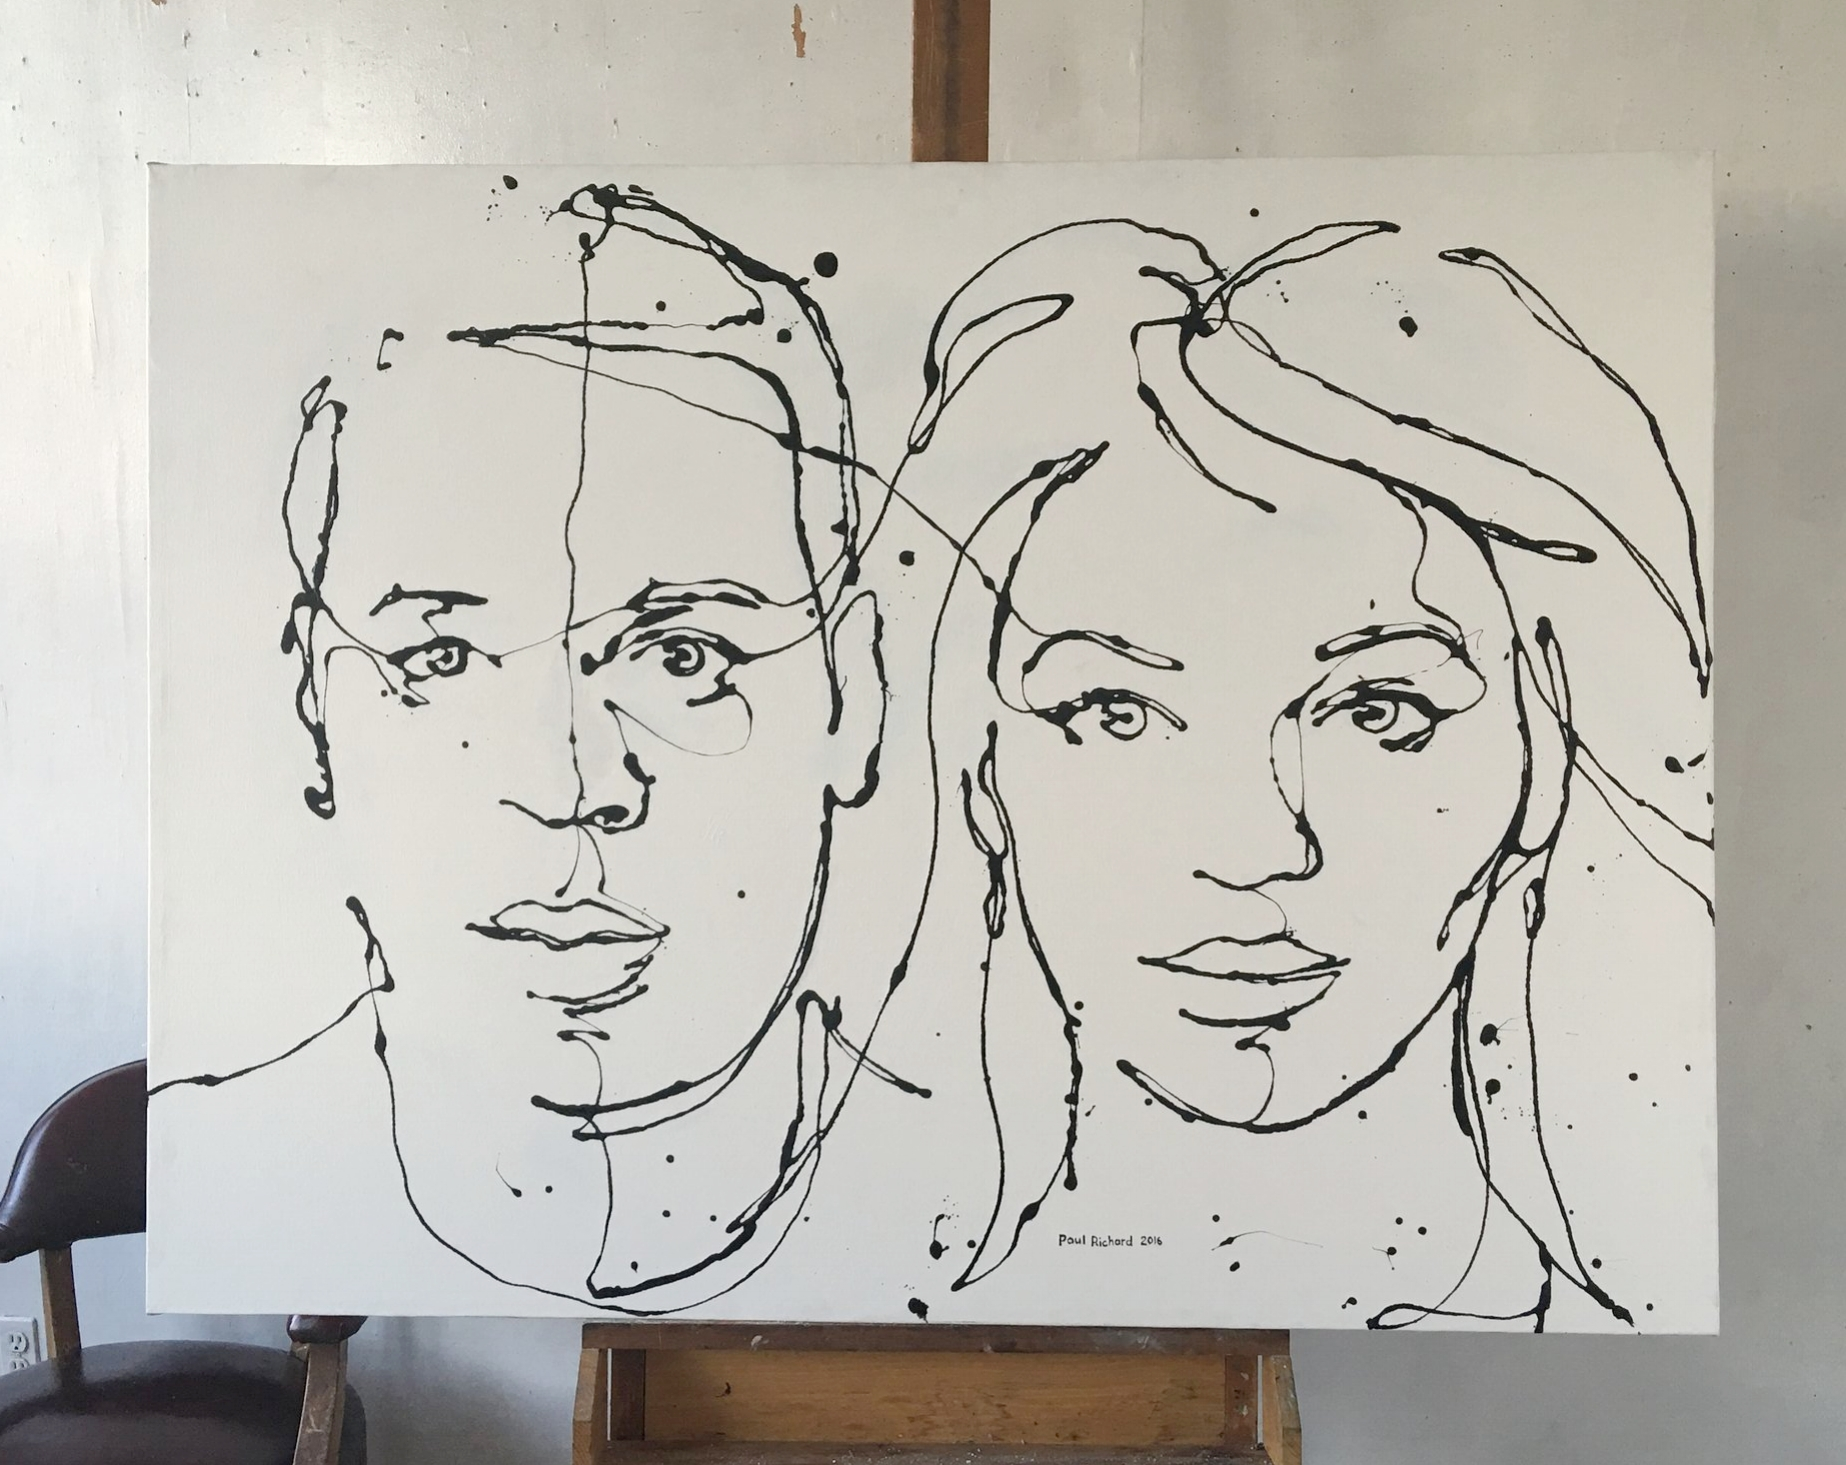 Private collection Jay Z & Beyoncé  Jay Z & Beyoncé, 2016, Oil on Canvas, 46 x 62 inches